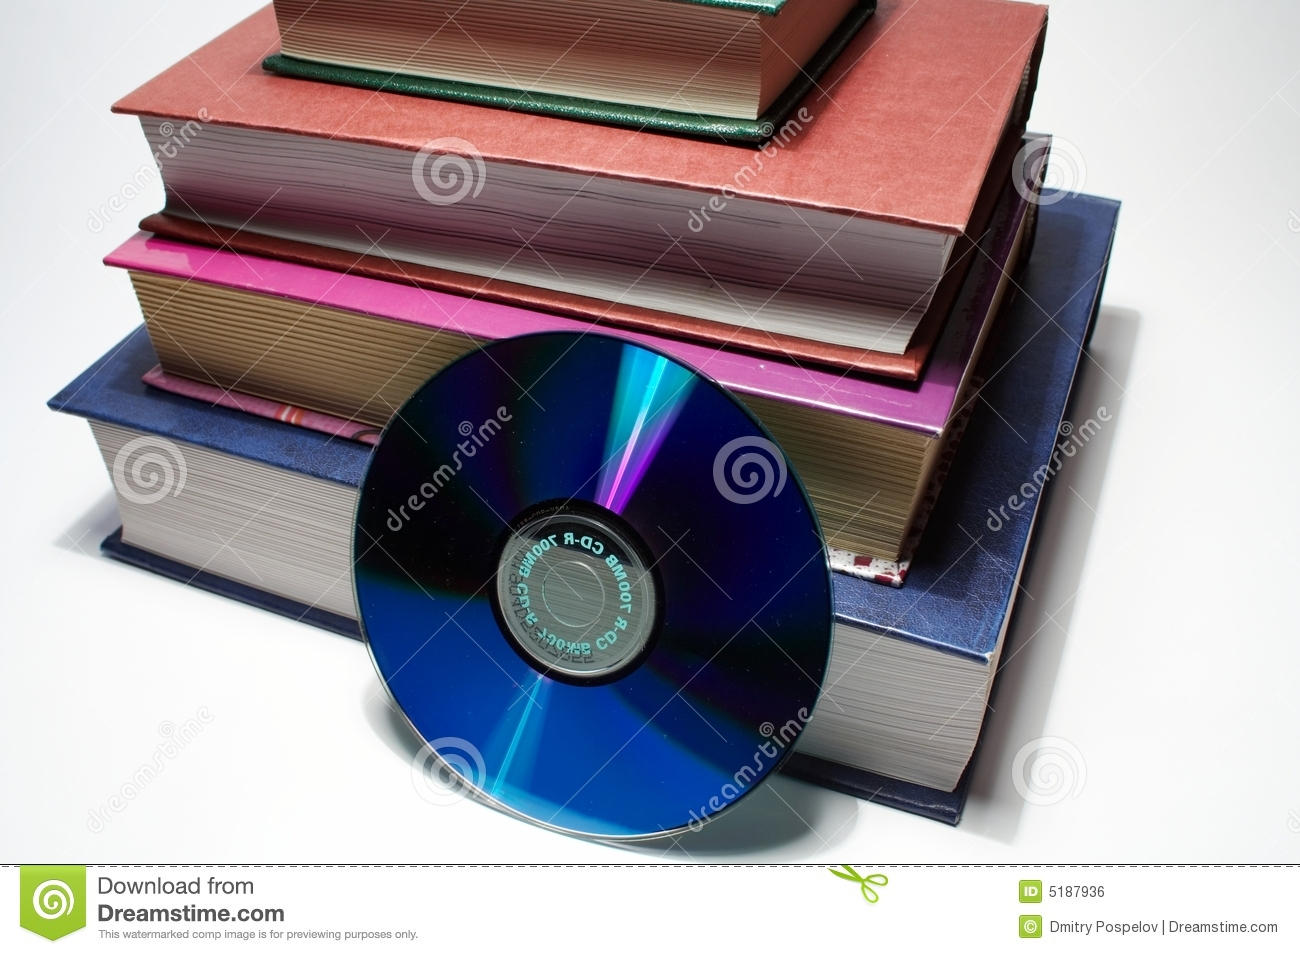 Books with cd banner free library Books And CD Royalty Free Stock Image - Image: 5187936 banner free library